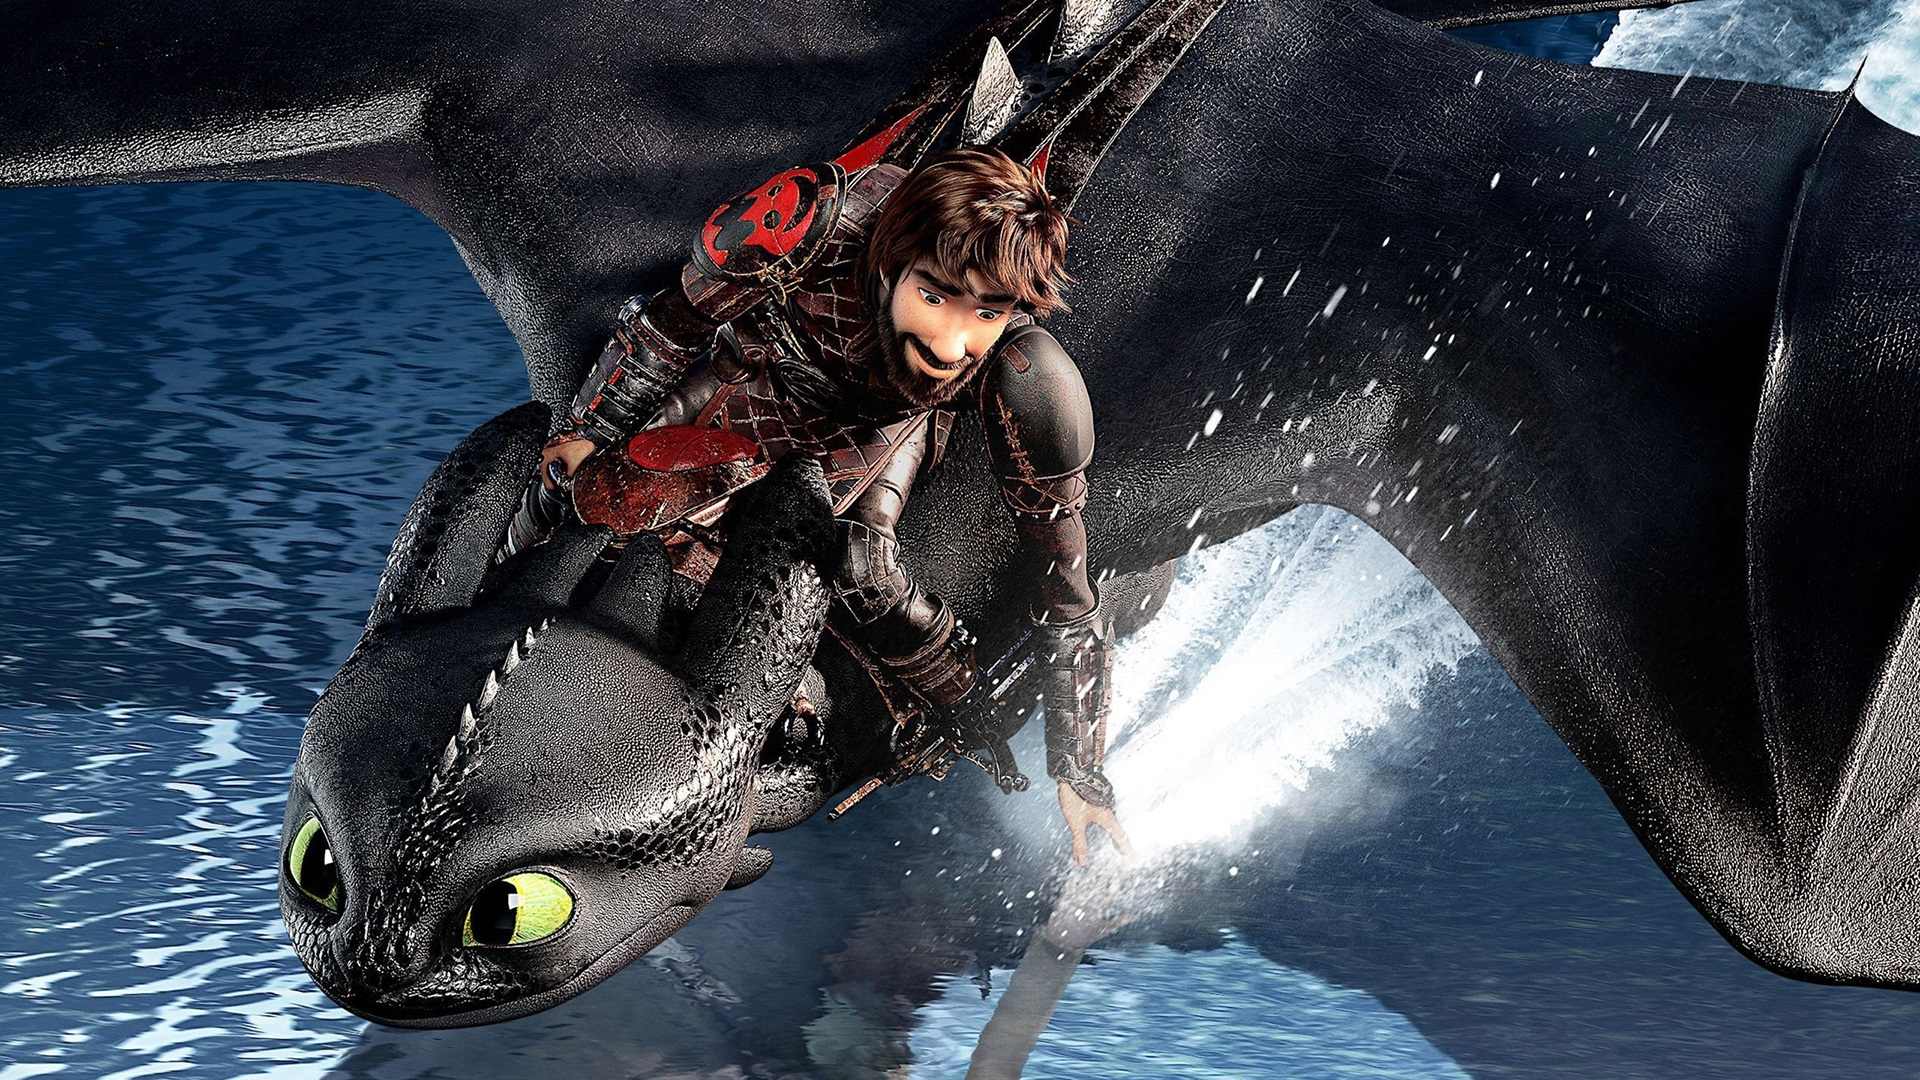 Wallpaper How To Train Your Dragon The Hidden World 1920x1080 Full